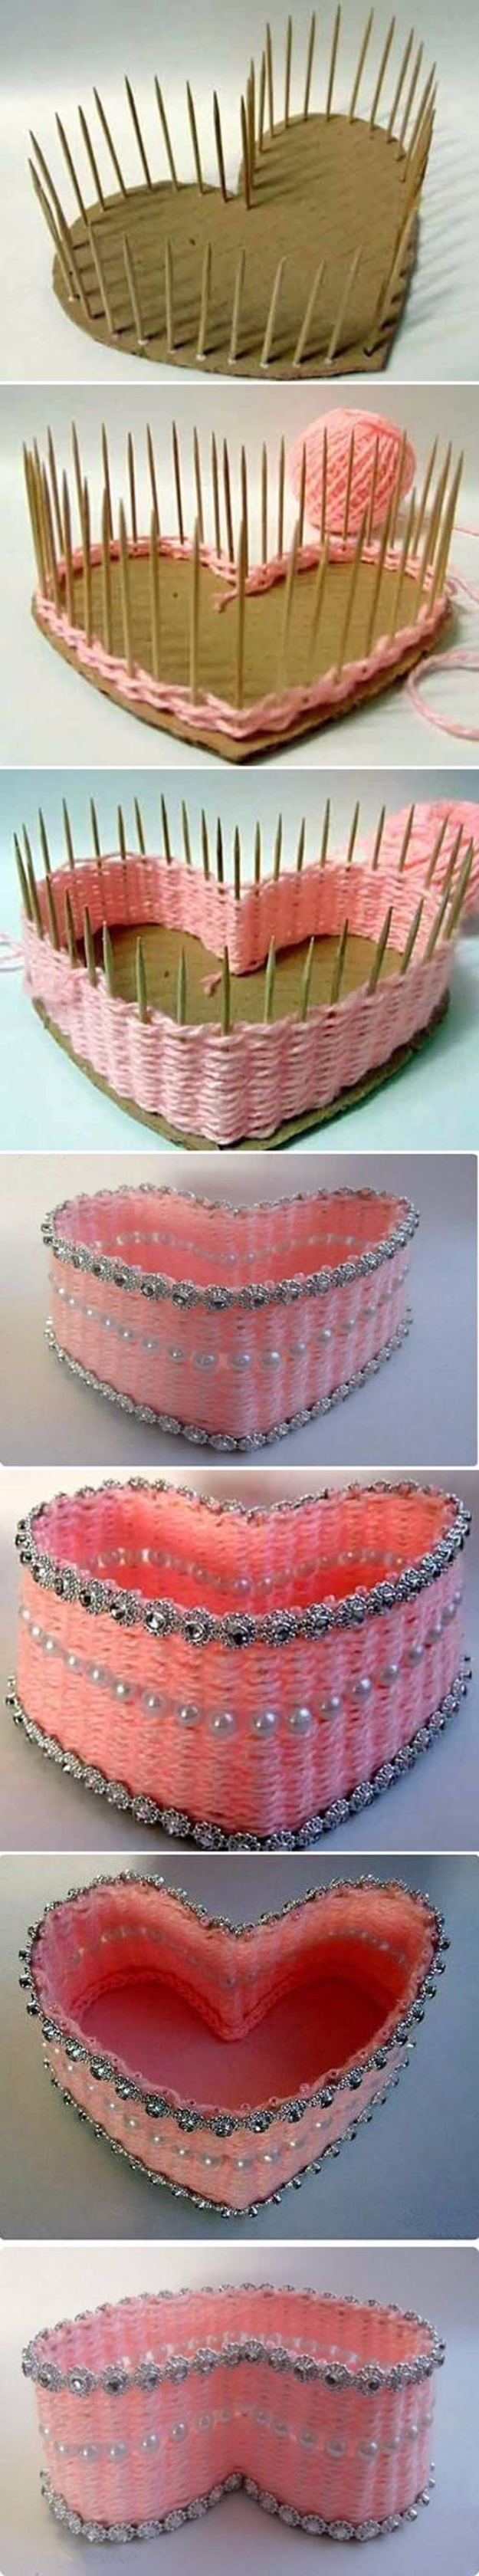 Creative Crafts Made With Baskets - DIY Yarn Woven Heart Shaped Basket - DIY Storage and Organizing Ideas, Gift Basket Ideas, Best DIY Christmas Presents and Holiday Gifts, Room and Home Decor with Step by Step Tutorials - Easy DIY Ideas and Dollar Store Crafts #crafts #diy